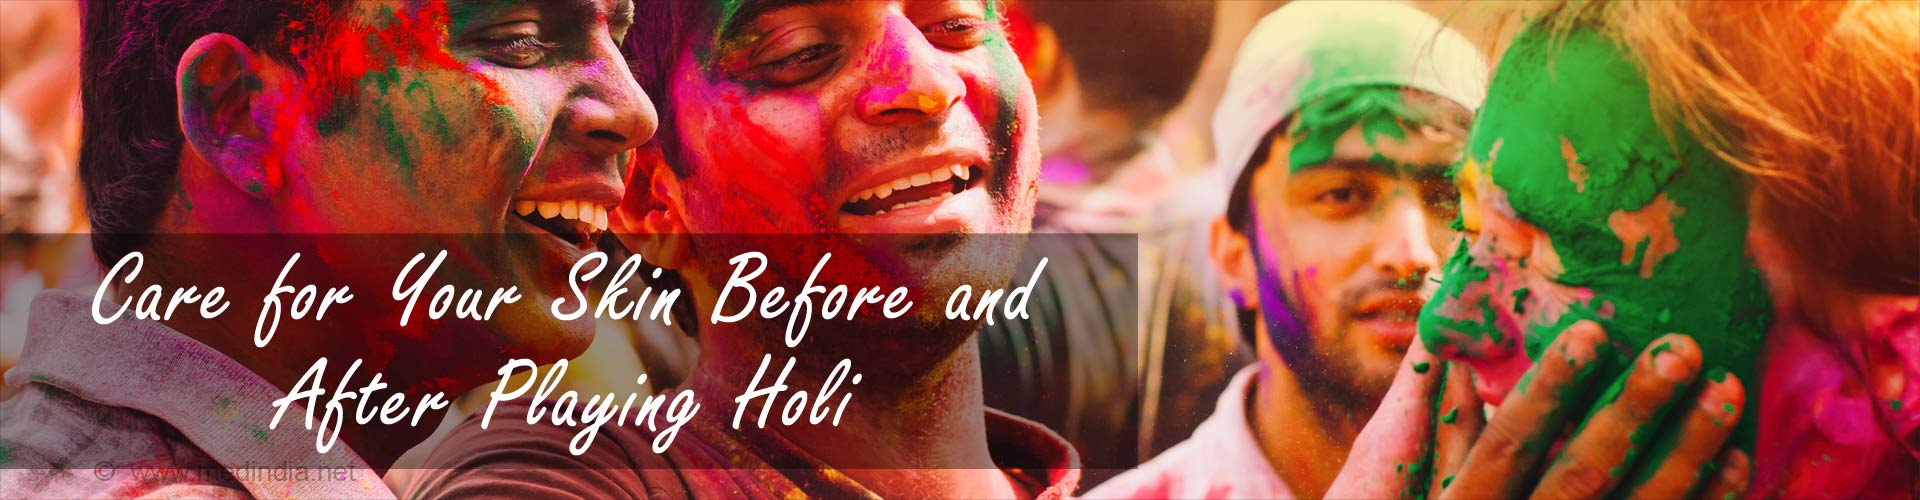 Holi Colors: How to Clean Your Face After Holi?